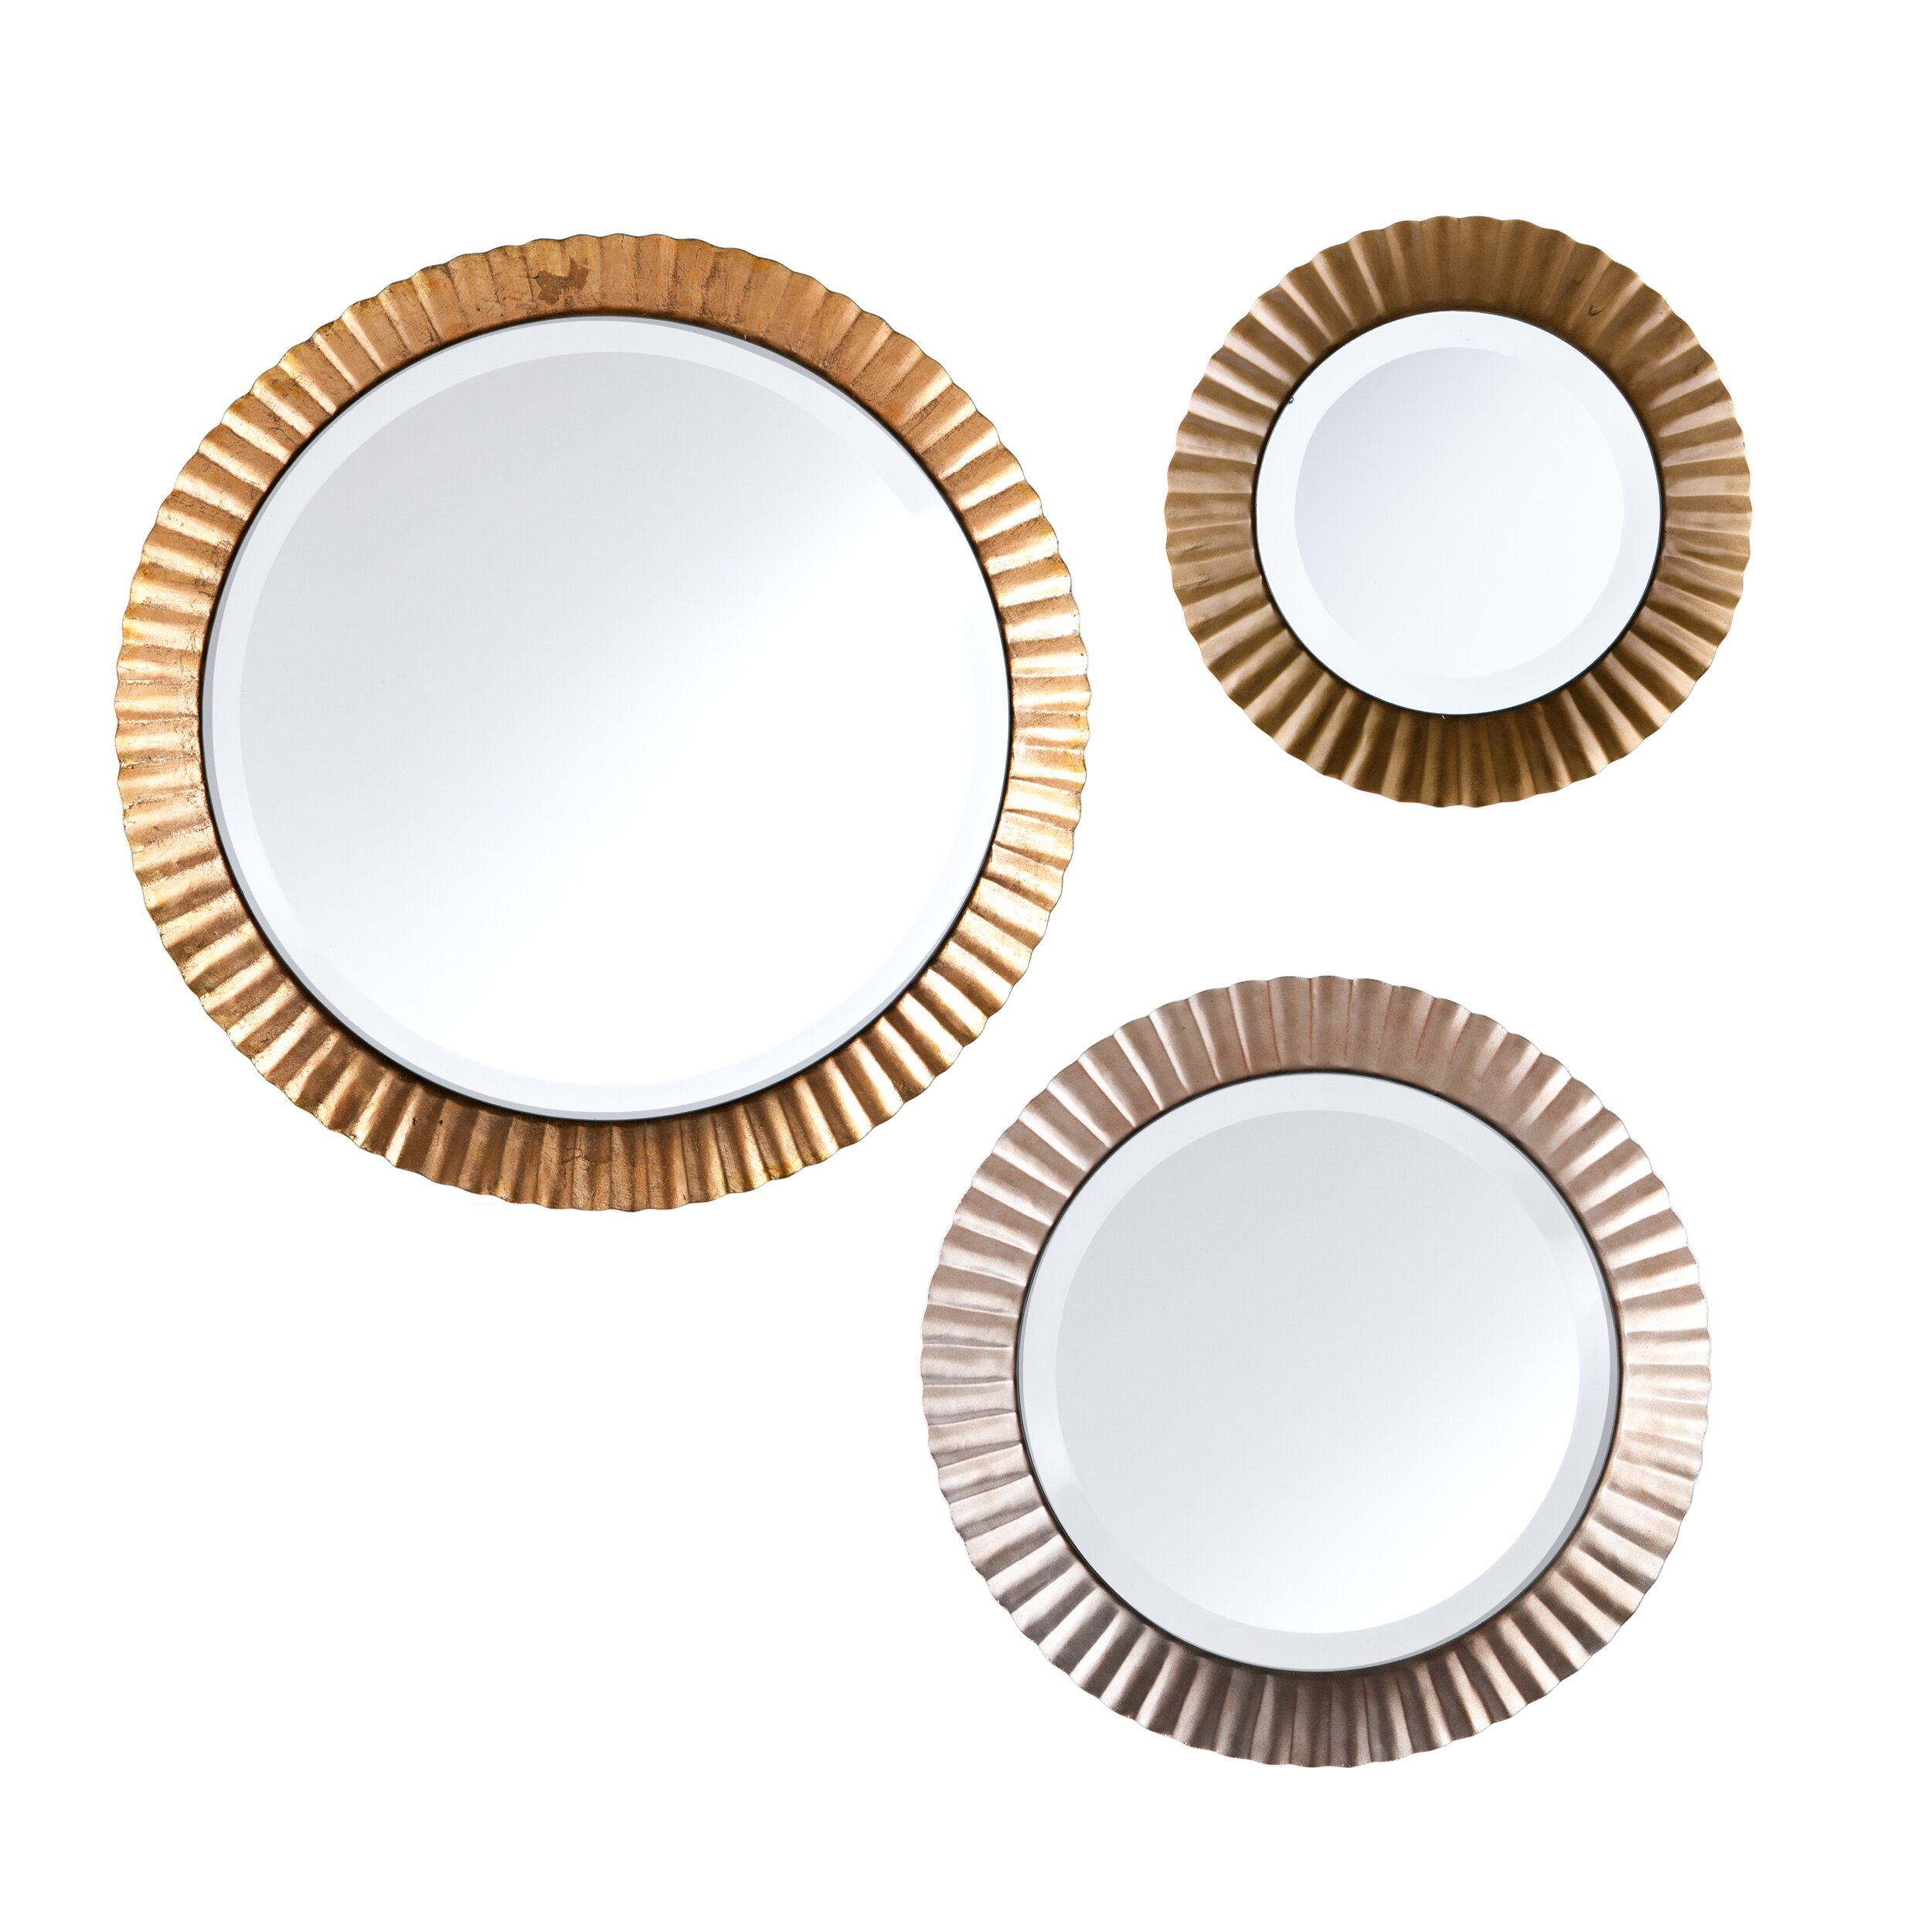 Brayden Studio 3 Piece Wall Mirror Set & Reviews | Wayfair